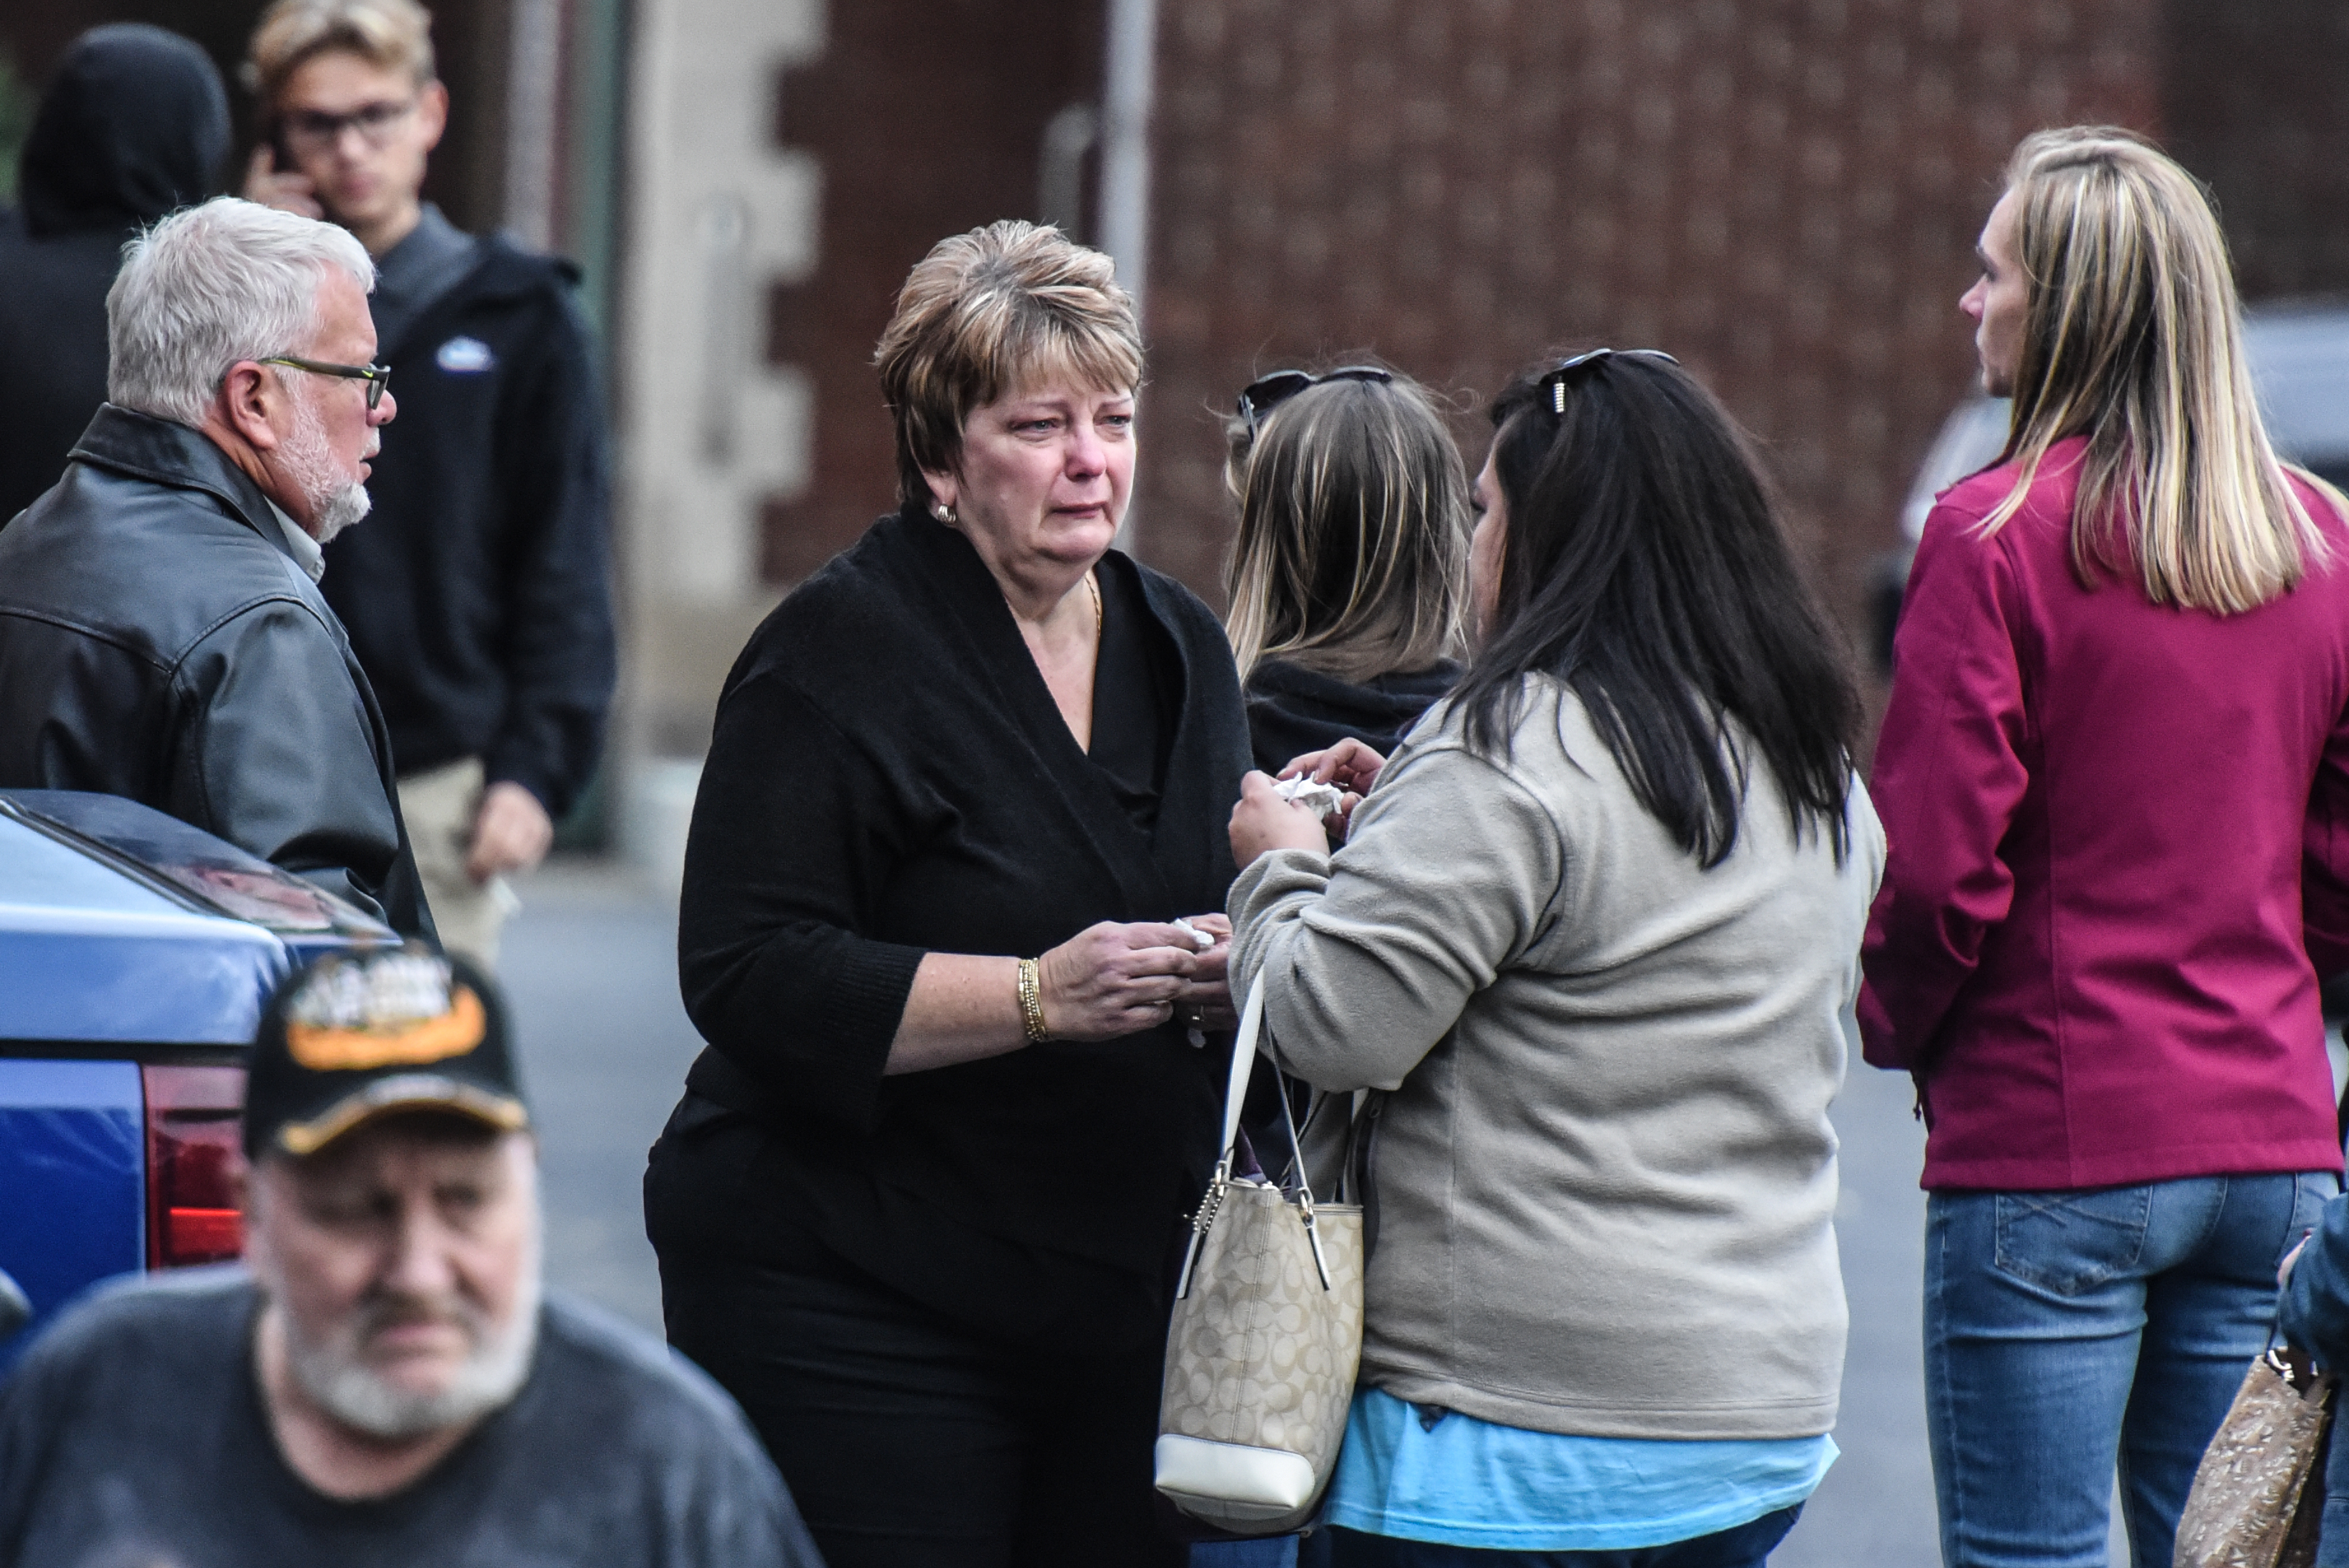 Mourners grieve after leaving a service at St. Stanislaus Roman Catholic Church for some of the victims in last weekend's fatal limo crash on October 12, 2018 in Amsterdam, New York. 20 people died in the crash including the driver of the limousine, 17 passengers, and two pedestrians. Photo by Stephanie Keith/Getty Images